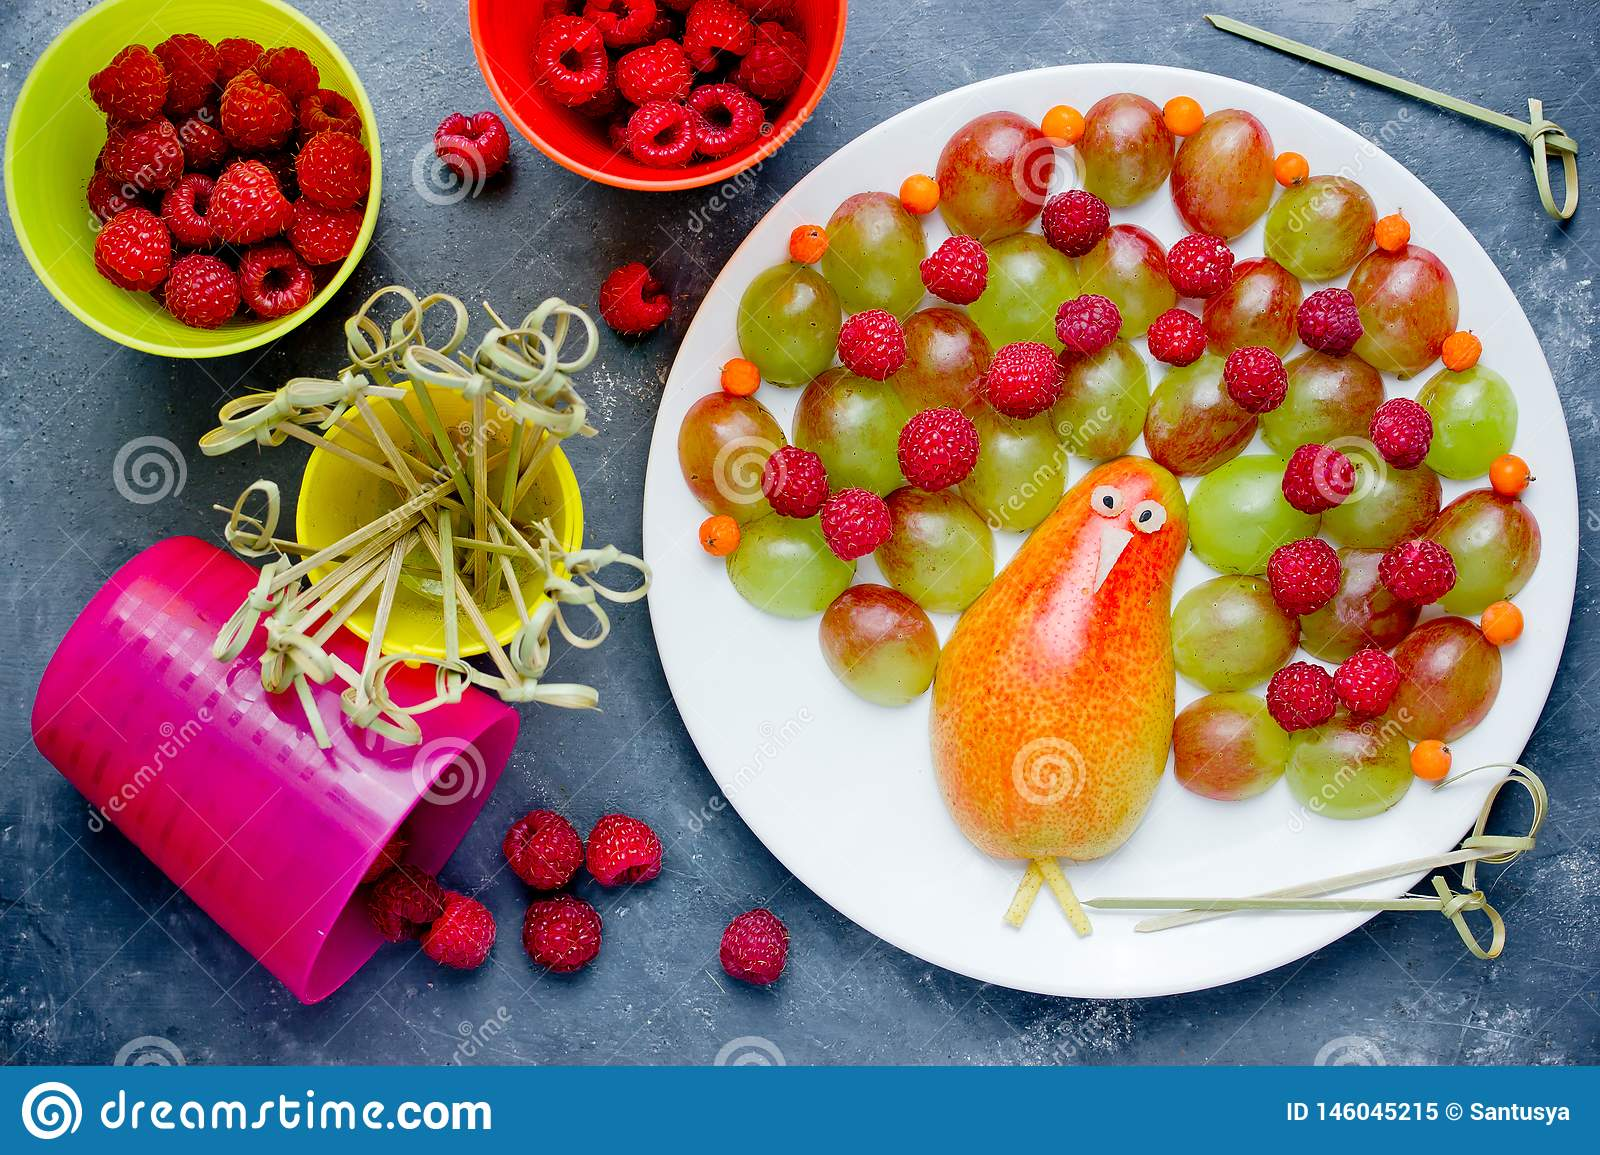 4 573 Fruit Kids Plate Photos Free Royalty Free Stock Photos From Dreamstime